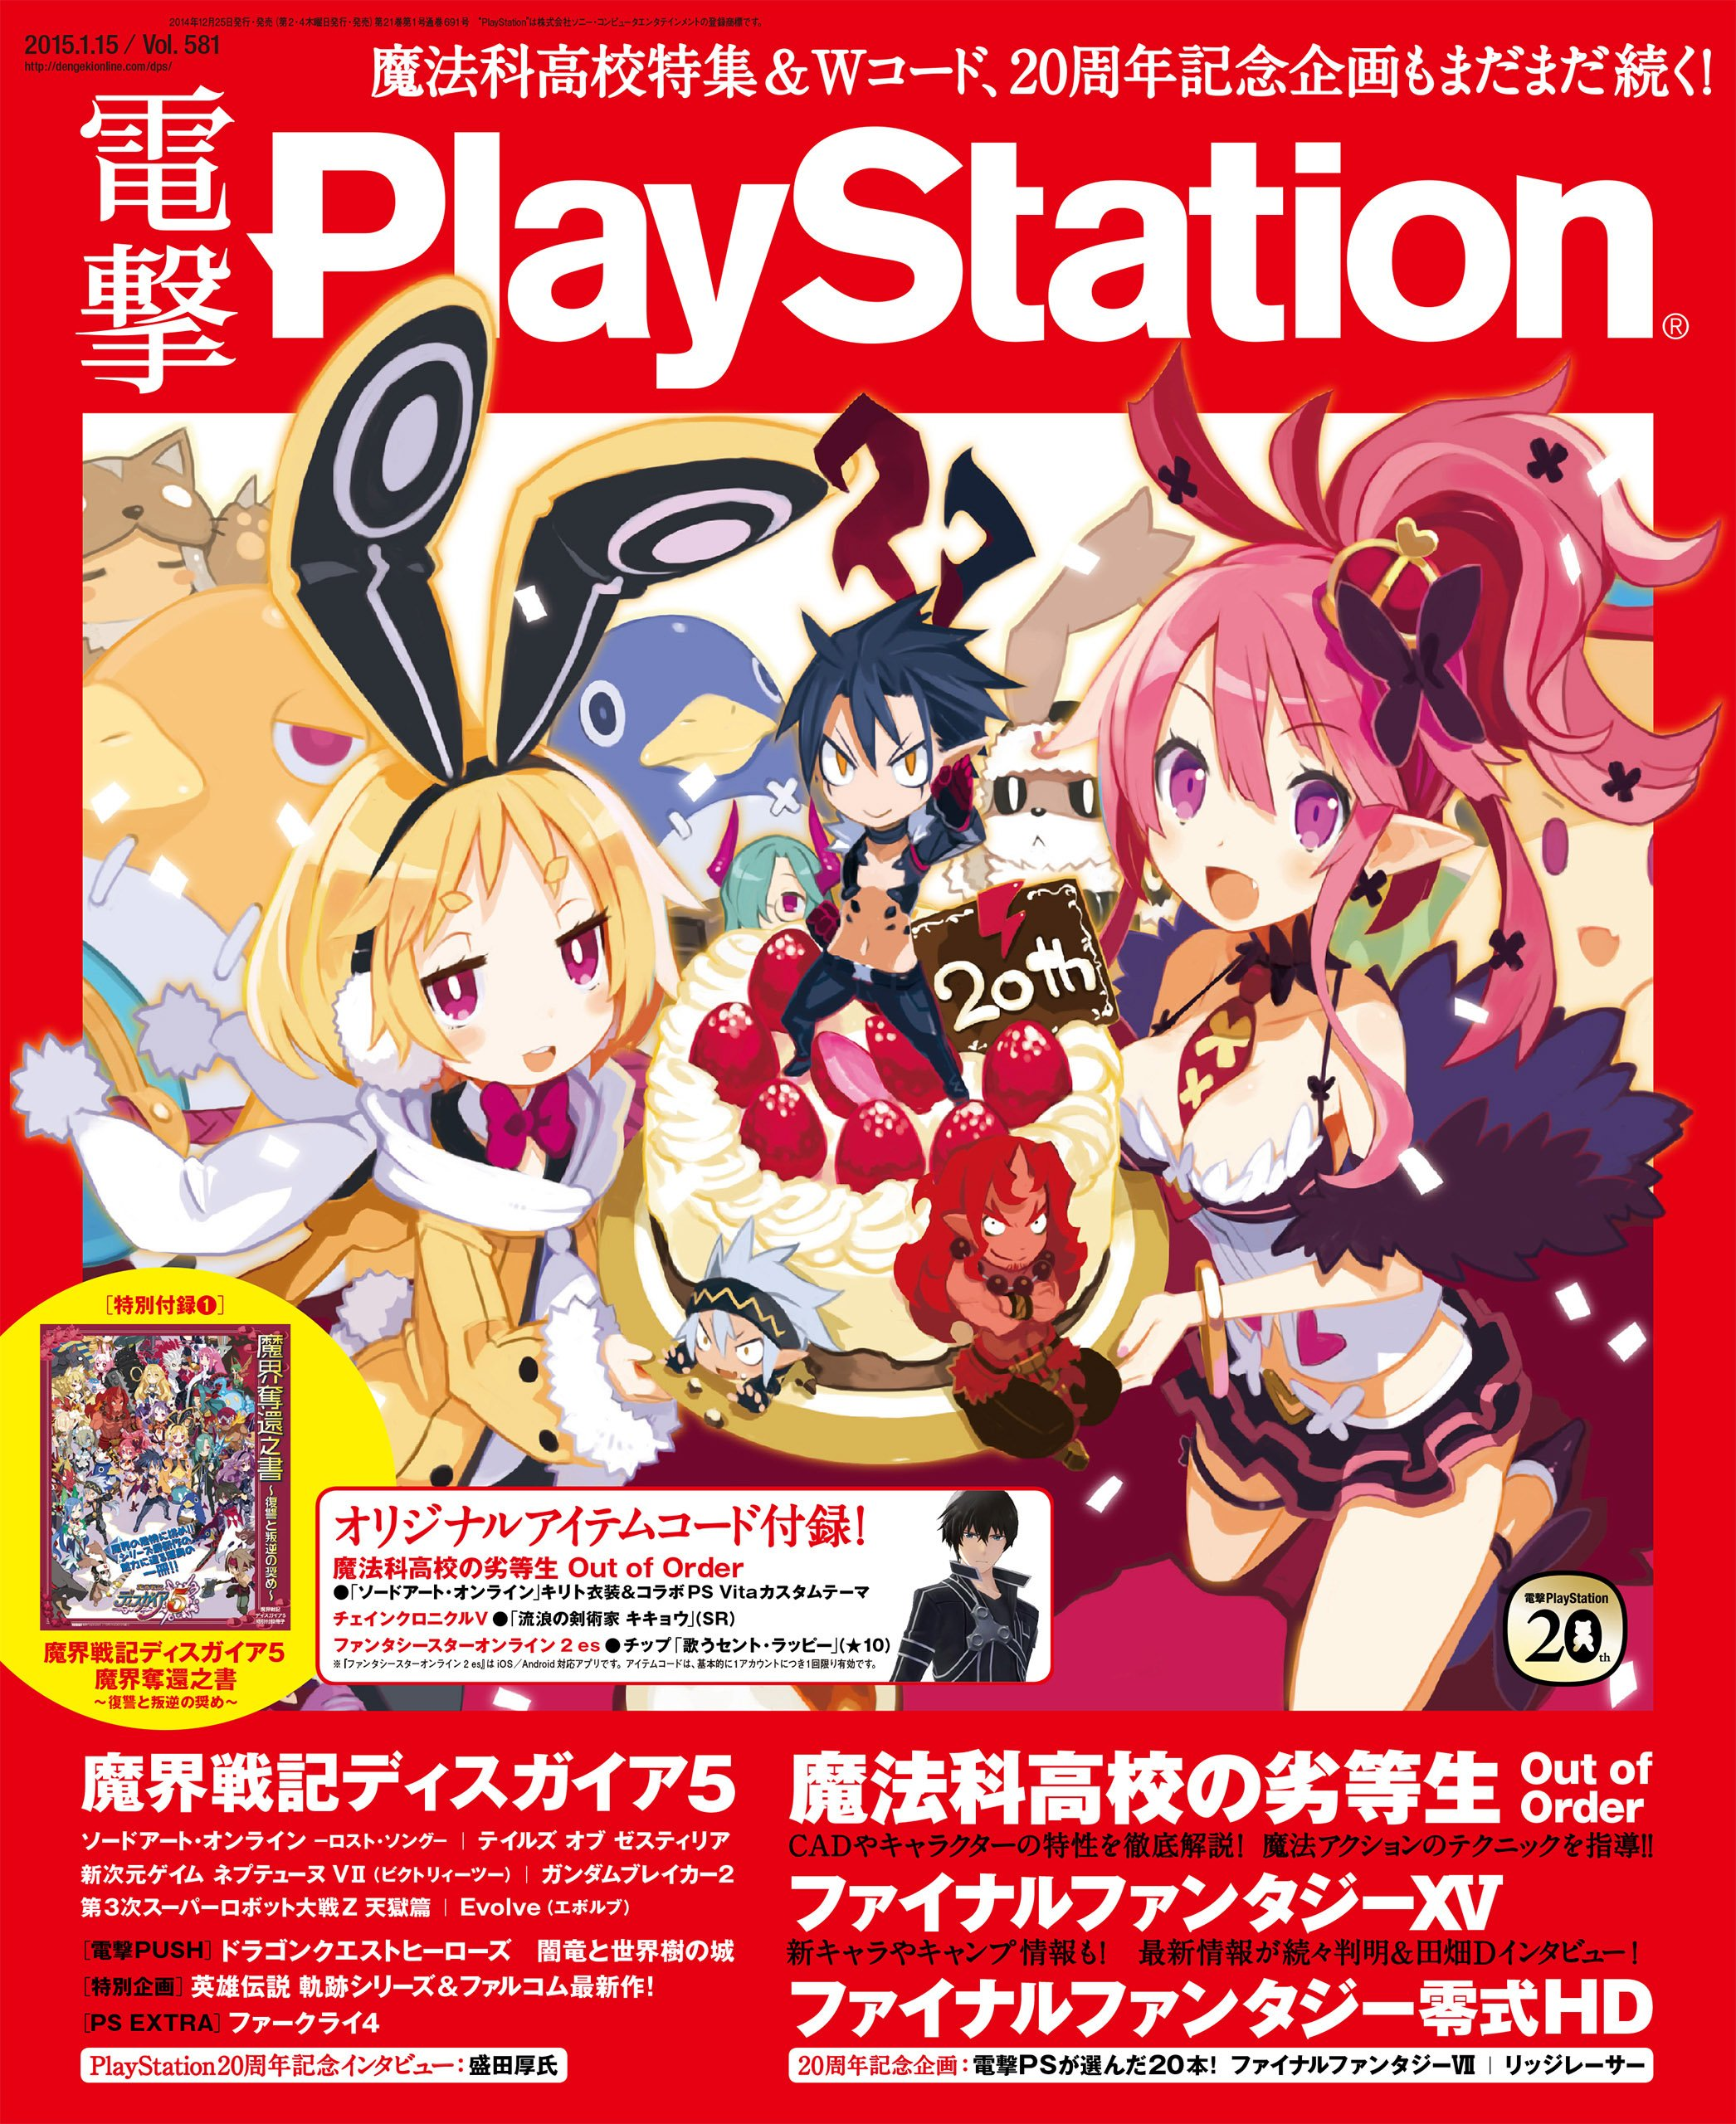 Dengeki PlayStation 581 (January 15, 2015)